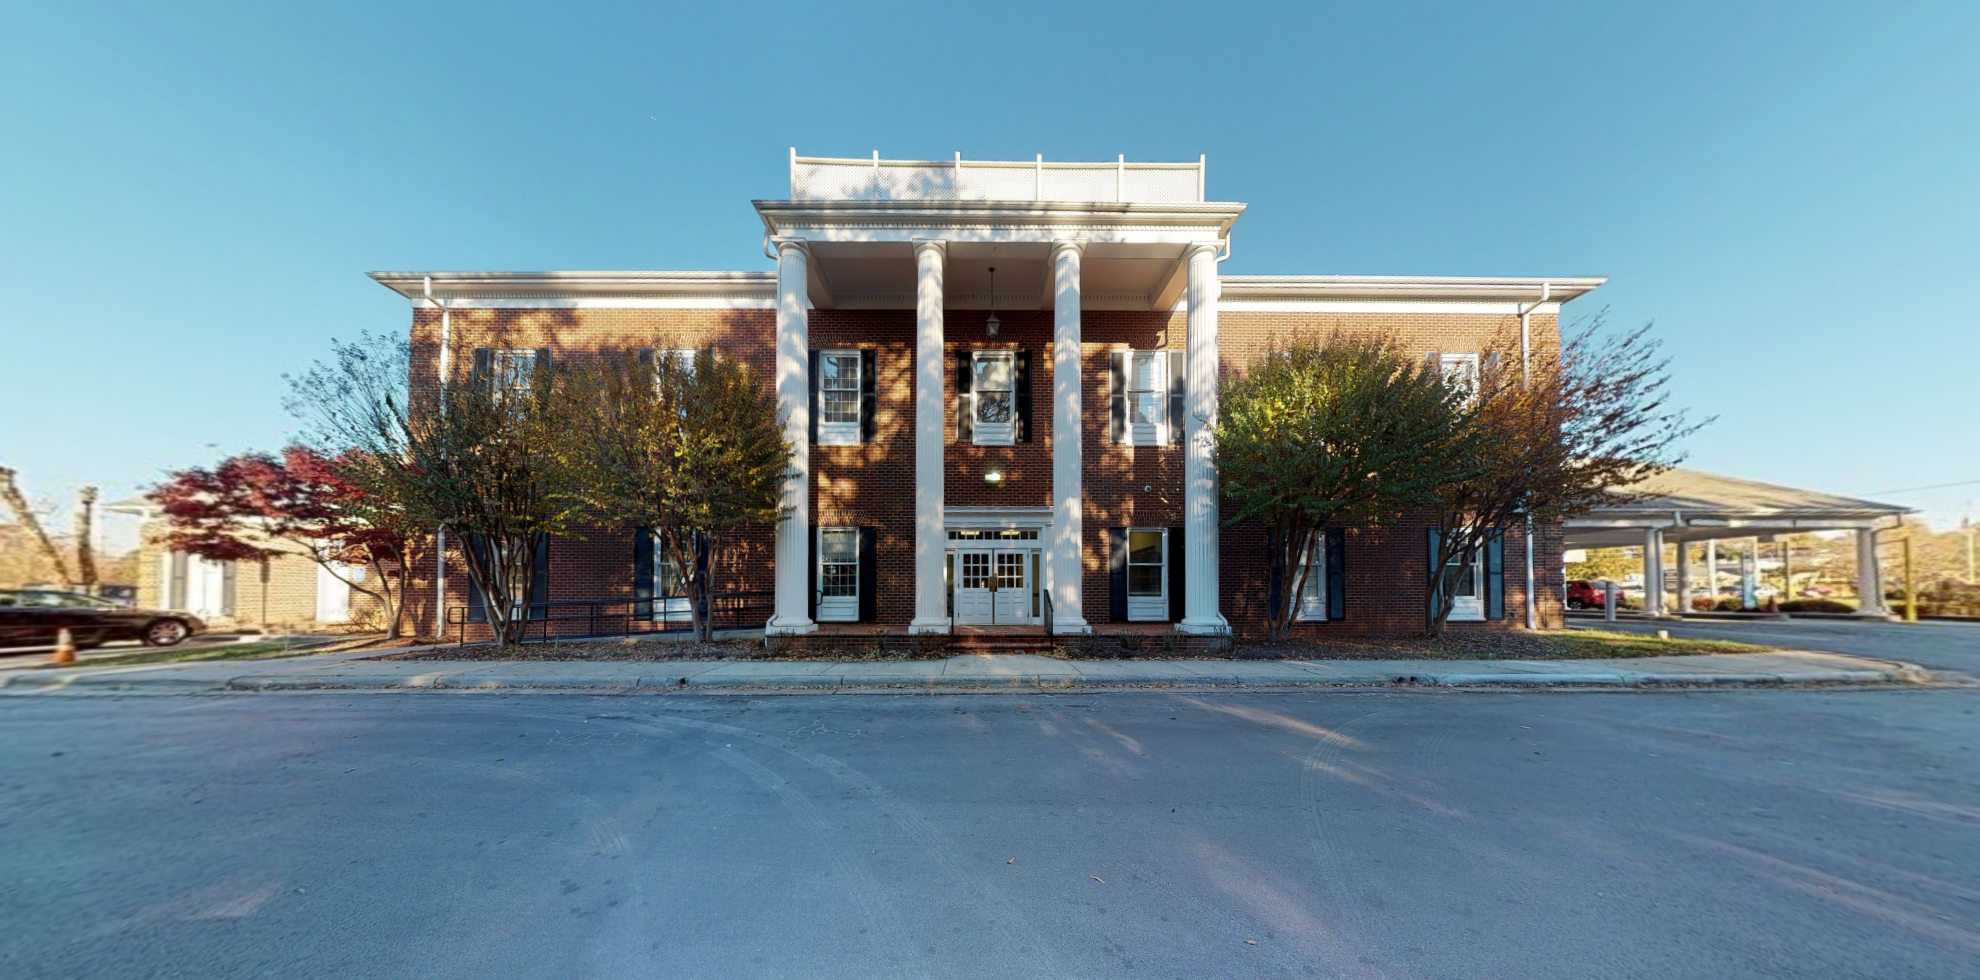 Bank of America financial center with drive-thru ATM | 355 S New Hope Rd, Gastonia, NC 28054